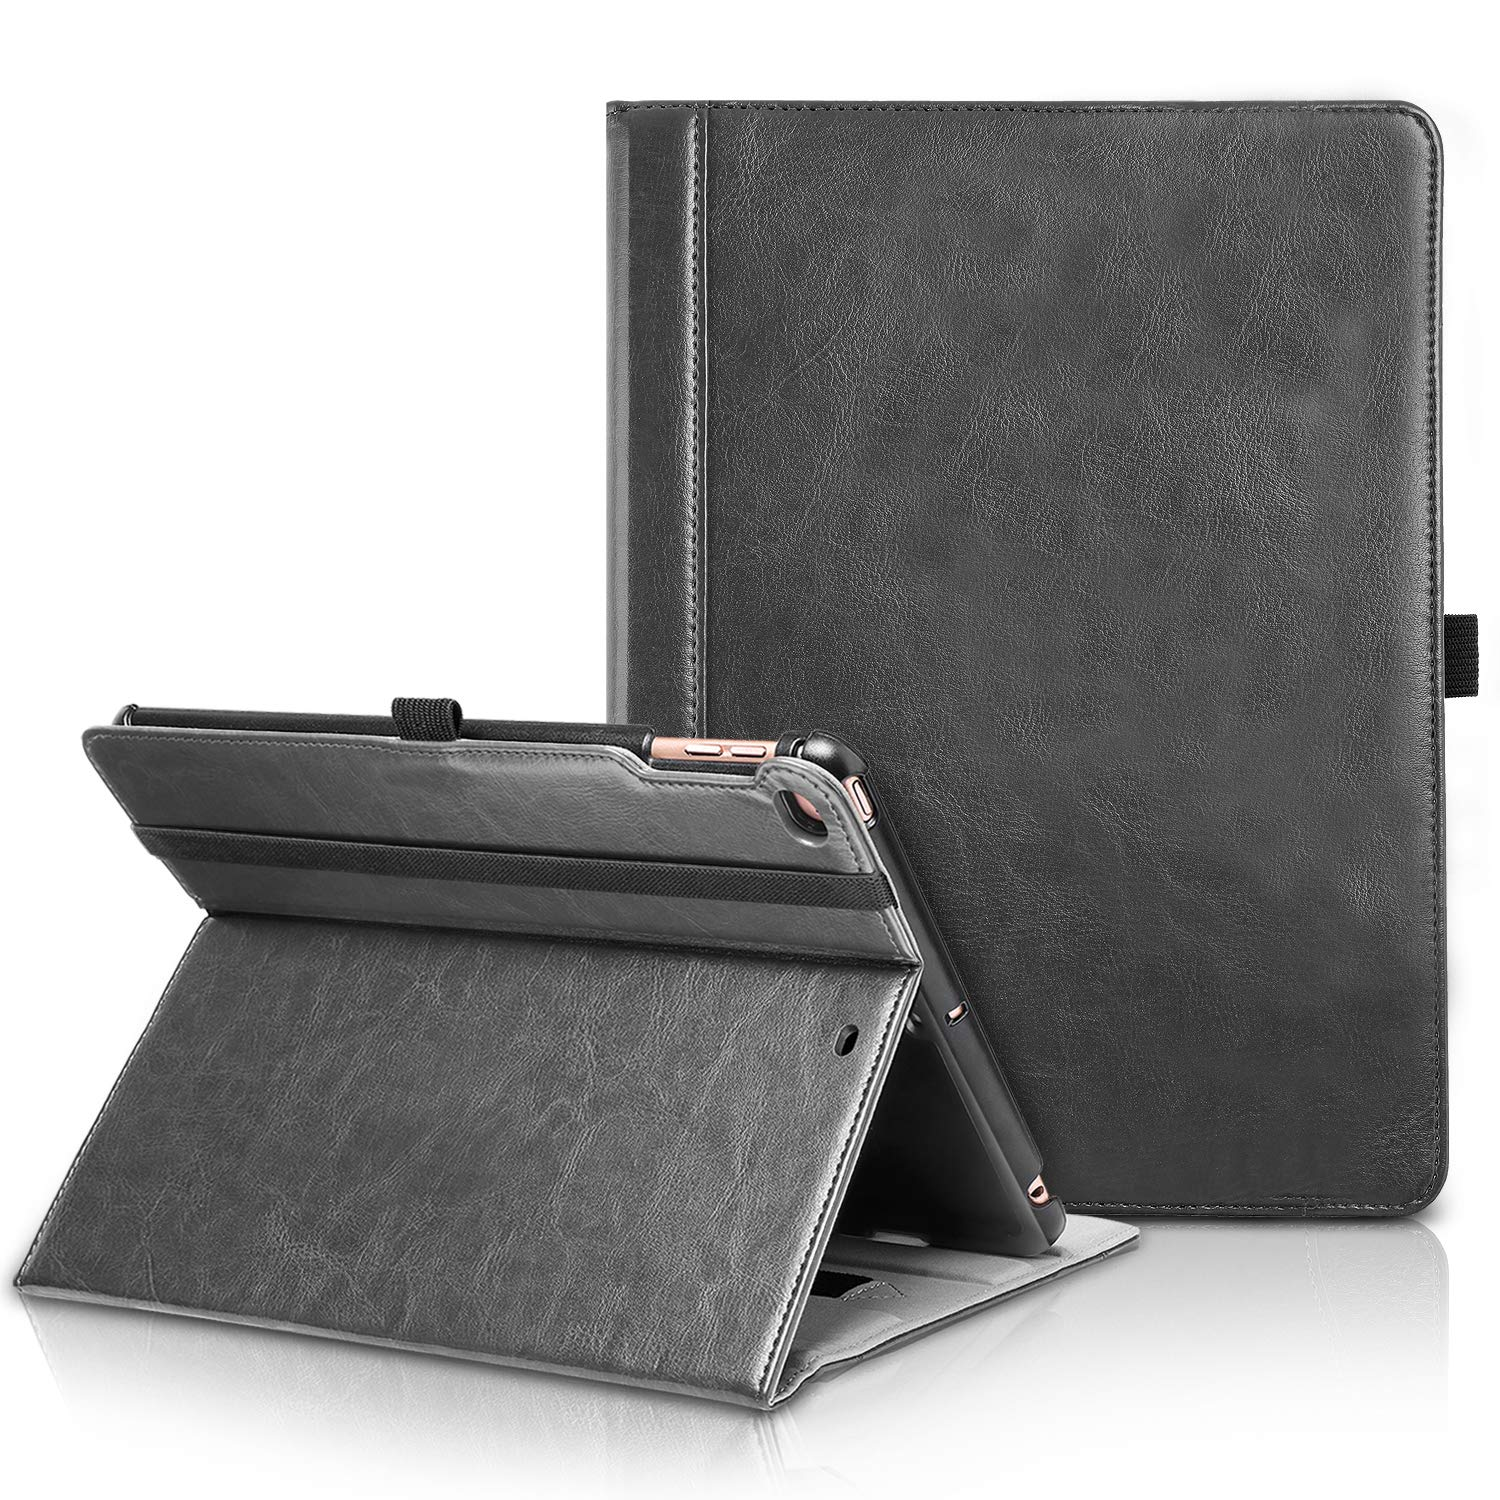 TIRIN New iPad 9.7 2018/2017 Case-Smart Stand Magnetic Premium Leather Case Cover with Auto Wake & Sleep, Front Pocket and Pen Holder for New iPad 9.7 Inch 2018/2017,iPad Air,iPad Air 2-Black